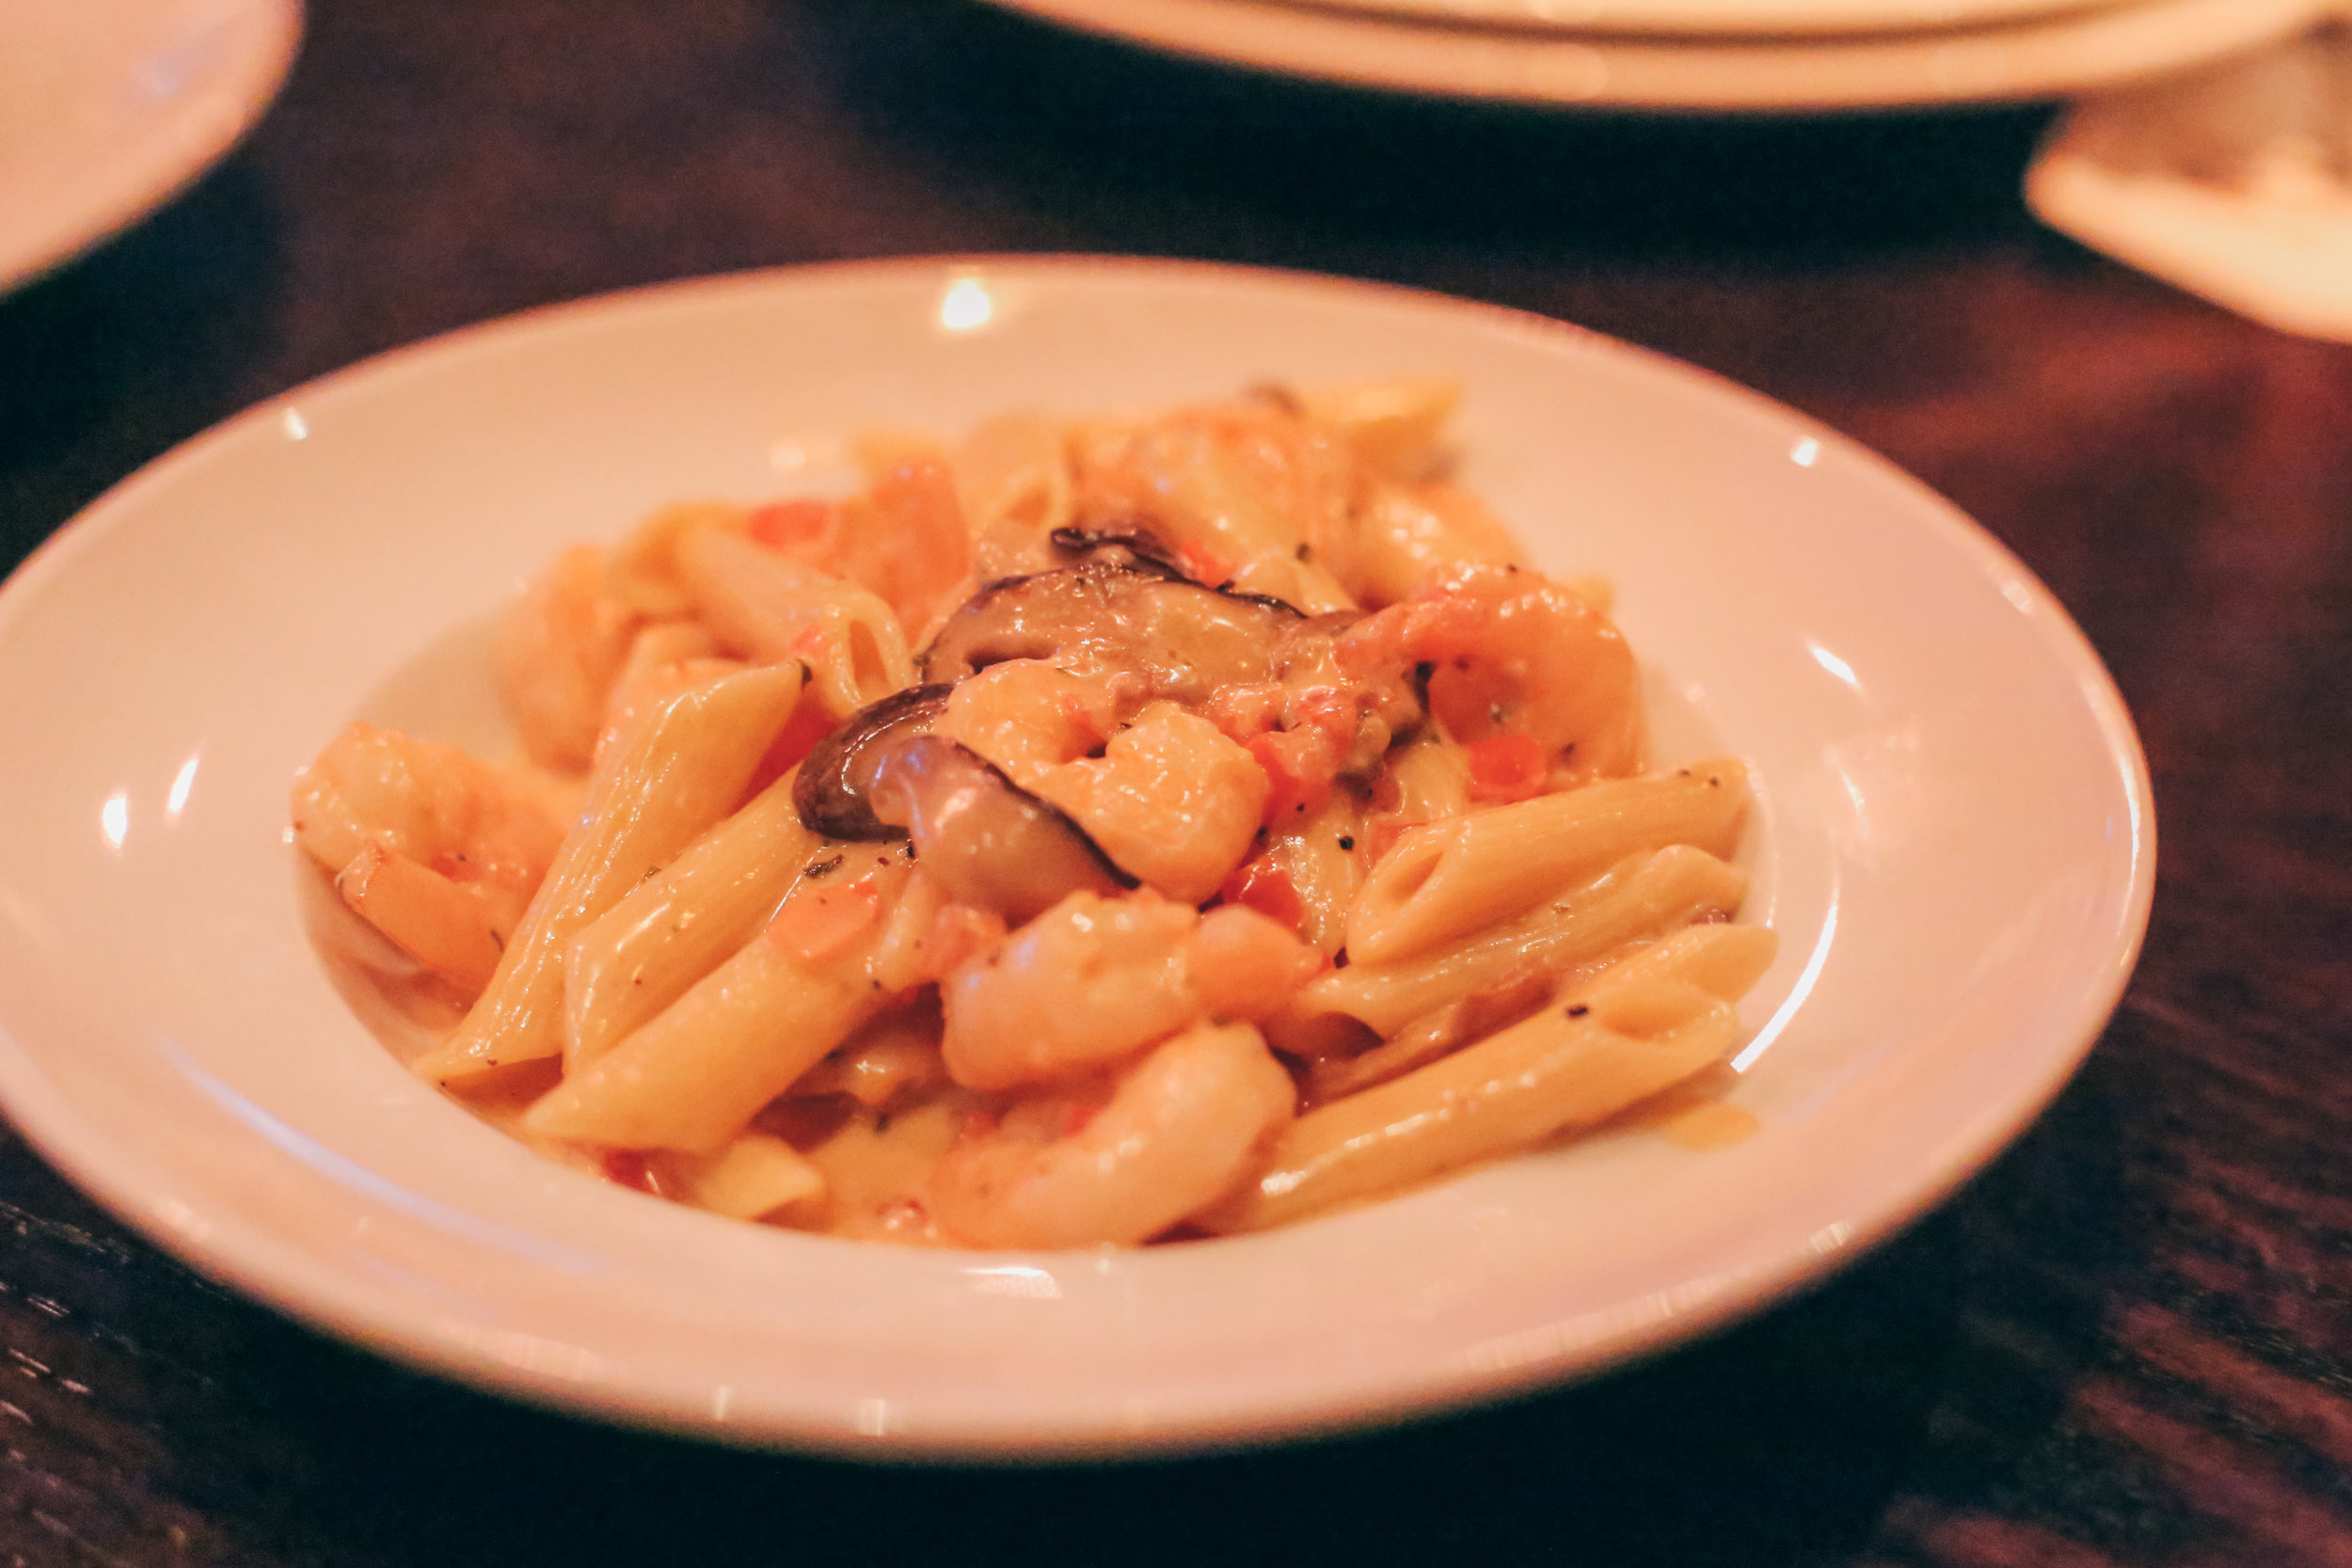 Chef's Daily Feature: Creamy Shrimp Penne Pasta with Button Mushrooms